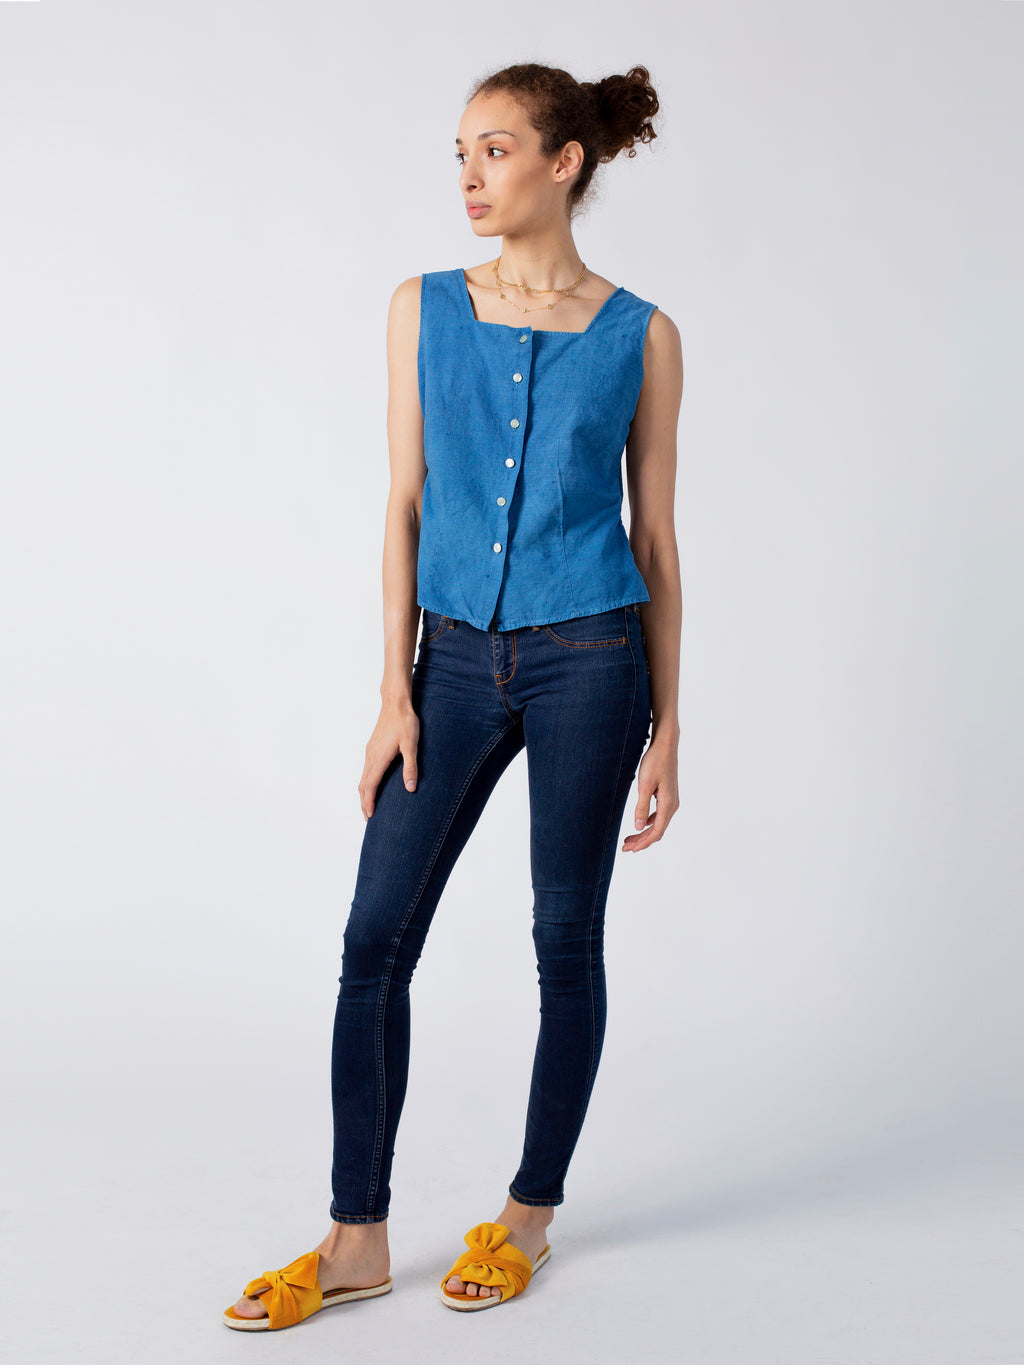 Indigo Dyed Button Up Tank